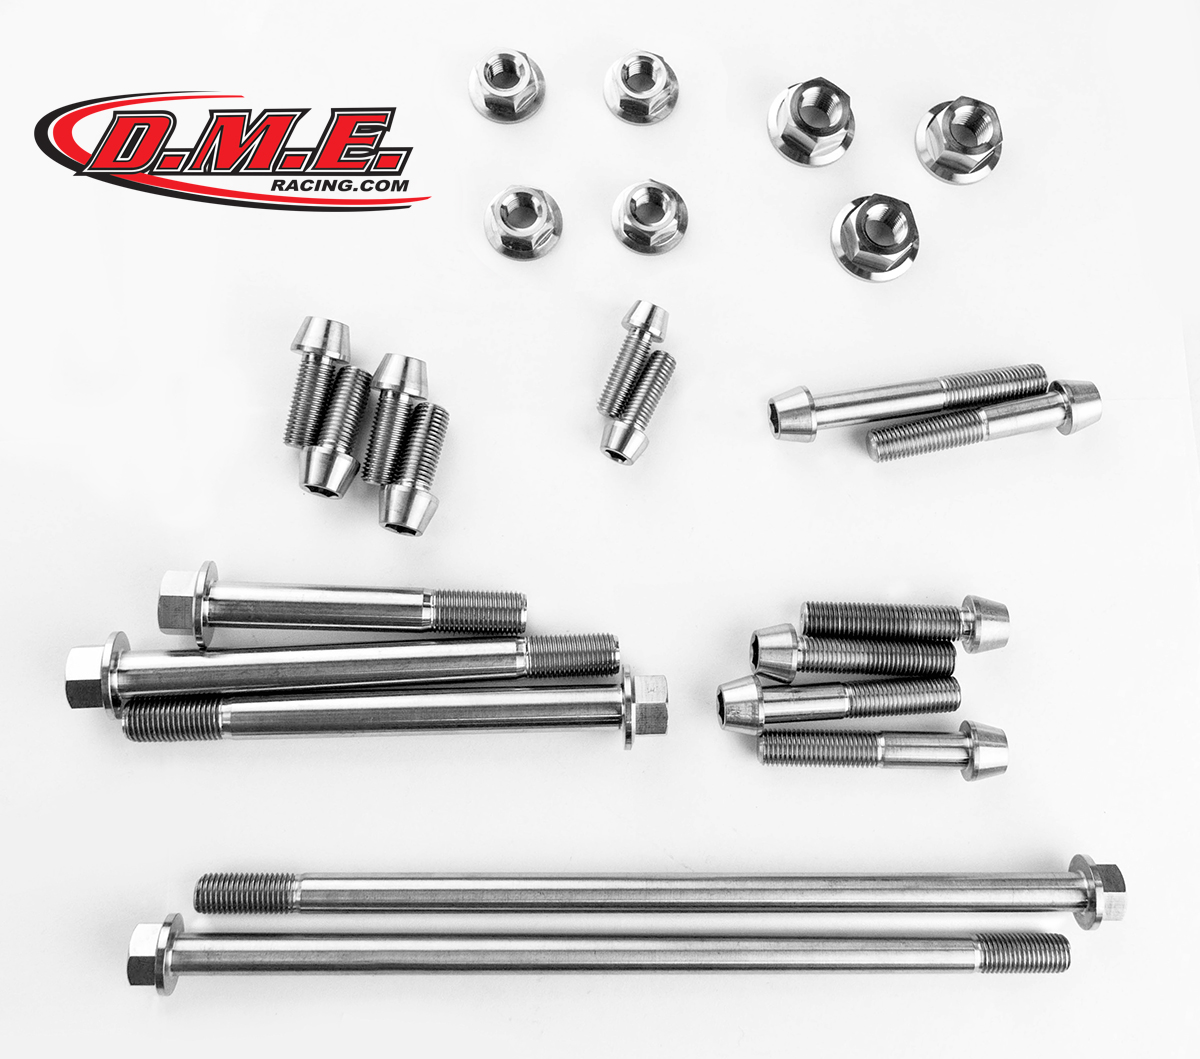 Titanium Bolt Kit - GSX-R1000 Frame and Suspension Kit